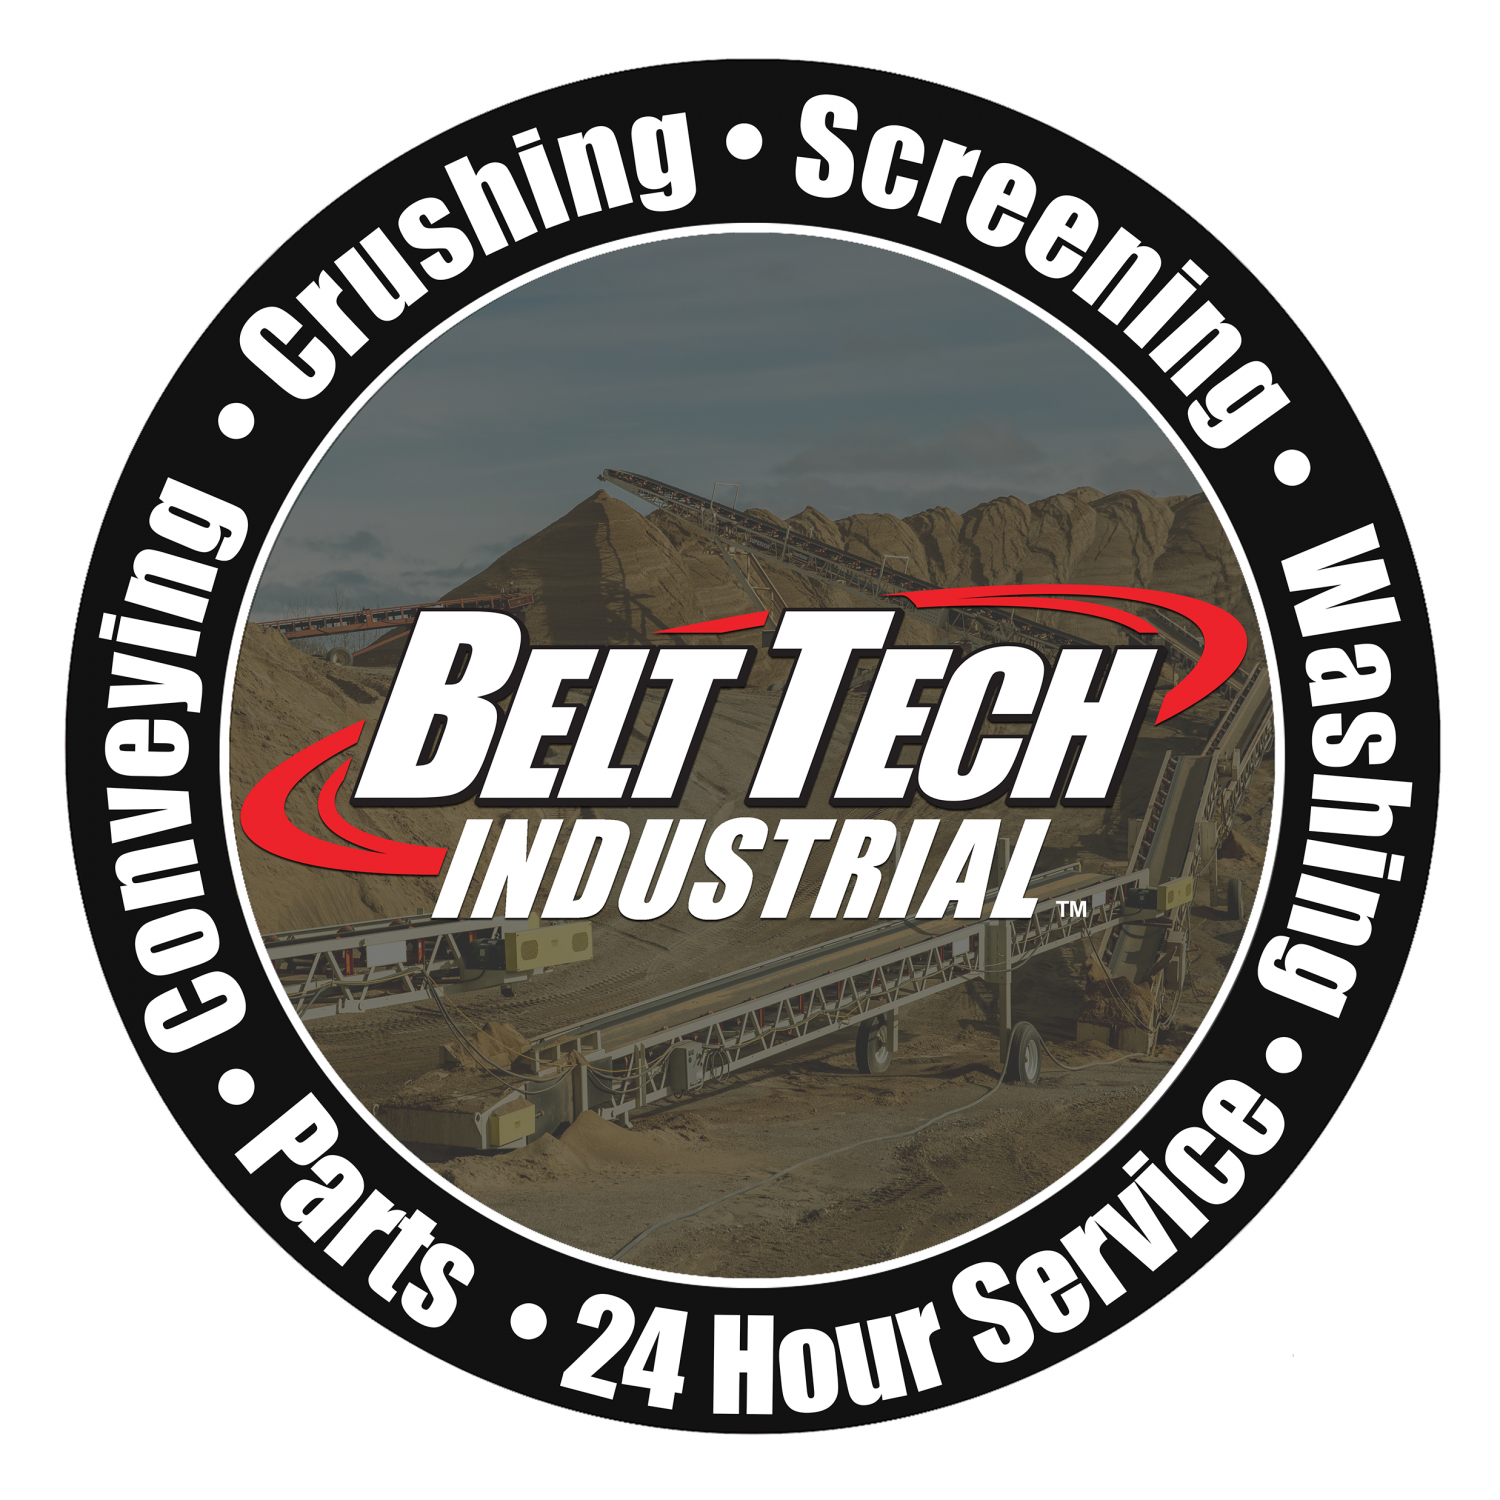 Belt Tech Industrial™